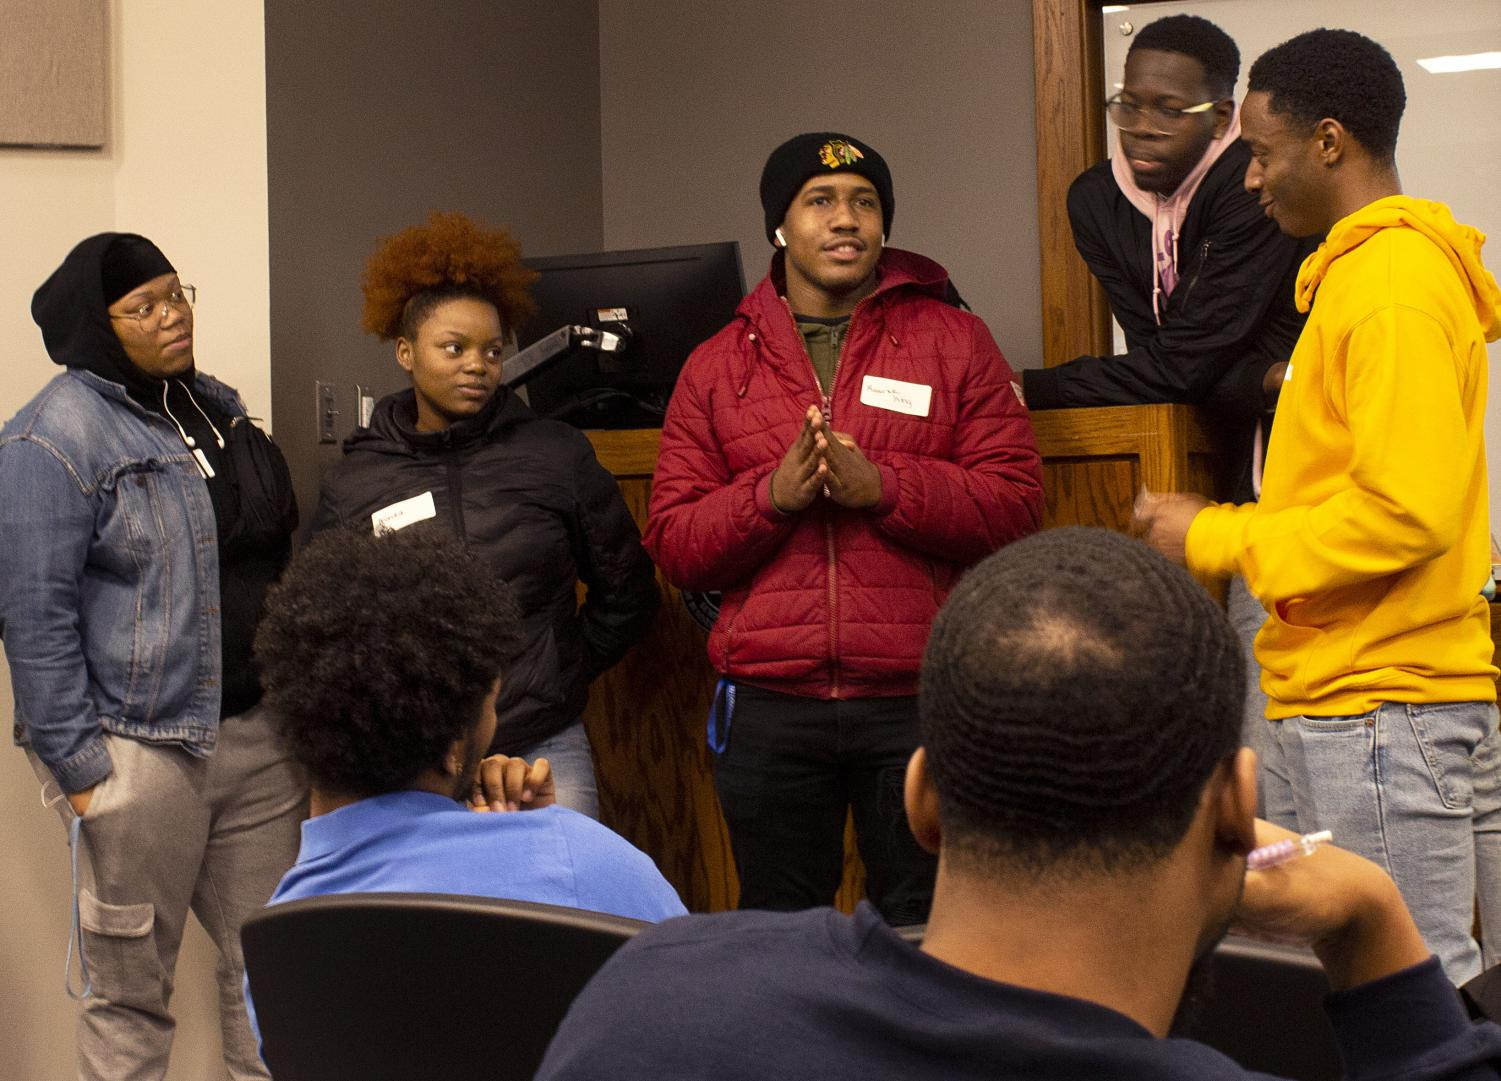 Joshua Ware, an applied engineering and tech major, questions the BSU team during the Family Feud: Black and Blue edition, hosted by S.T.R.O.N.G mentoring, in Lumpkin Auditorium on Tuesday night. Full coverage on page three.